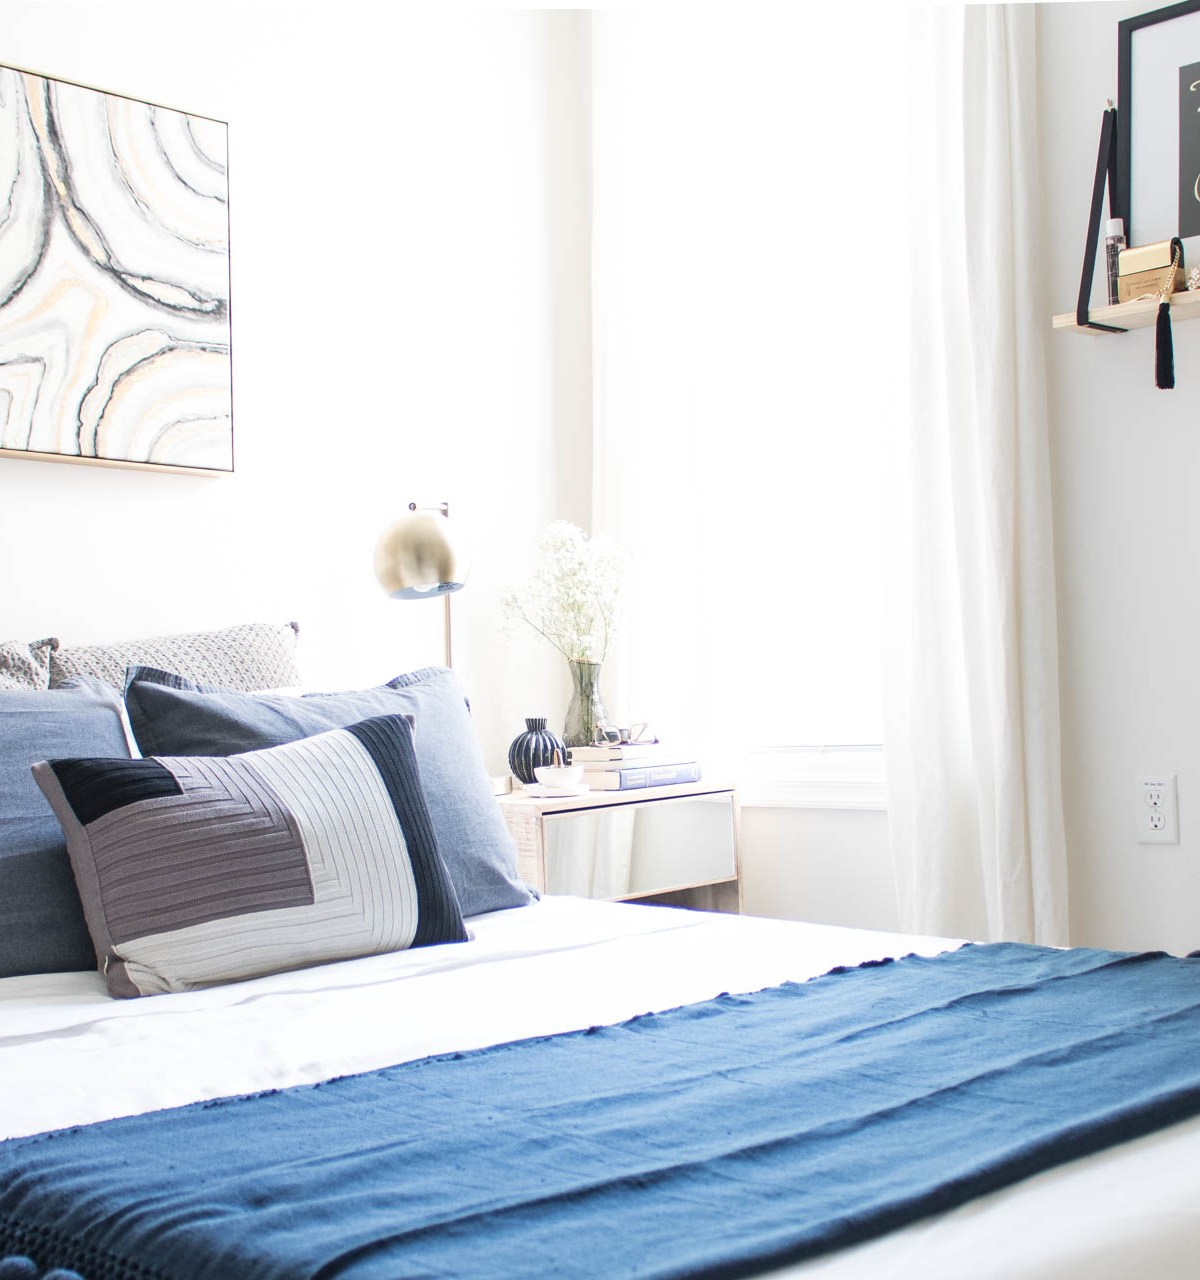 Klassy Kinks bedroom decor, blue and grey bedroom, modern bedroom decor